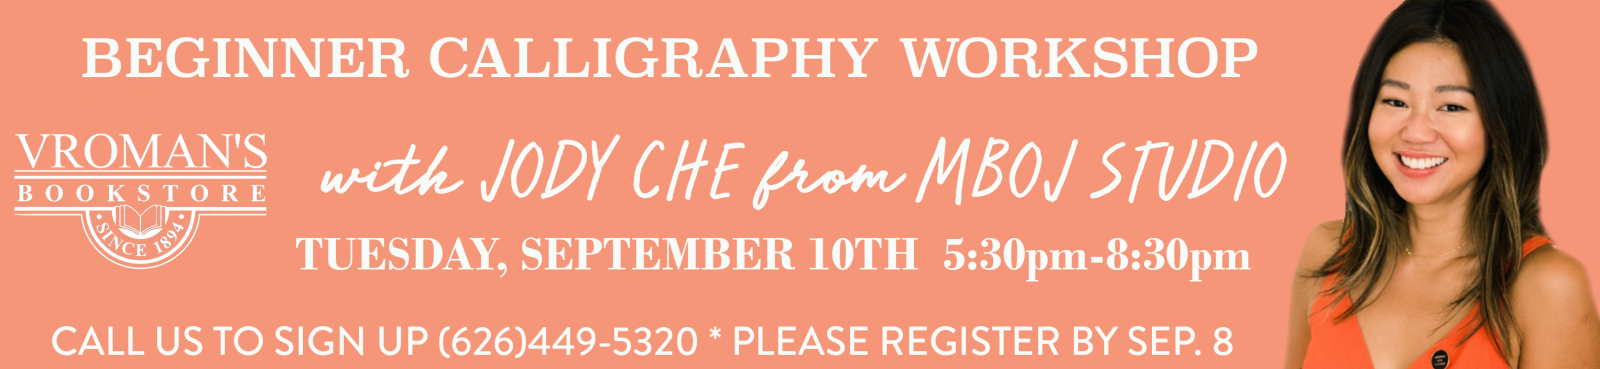 Beginner Calligraphy Class with Jody Che